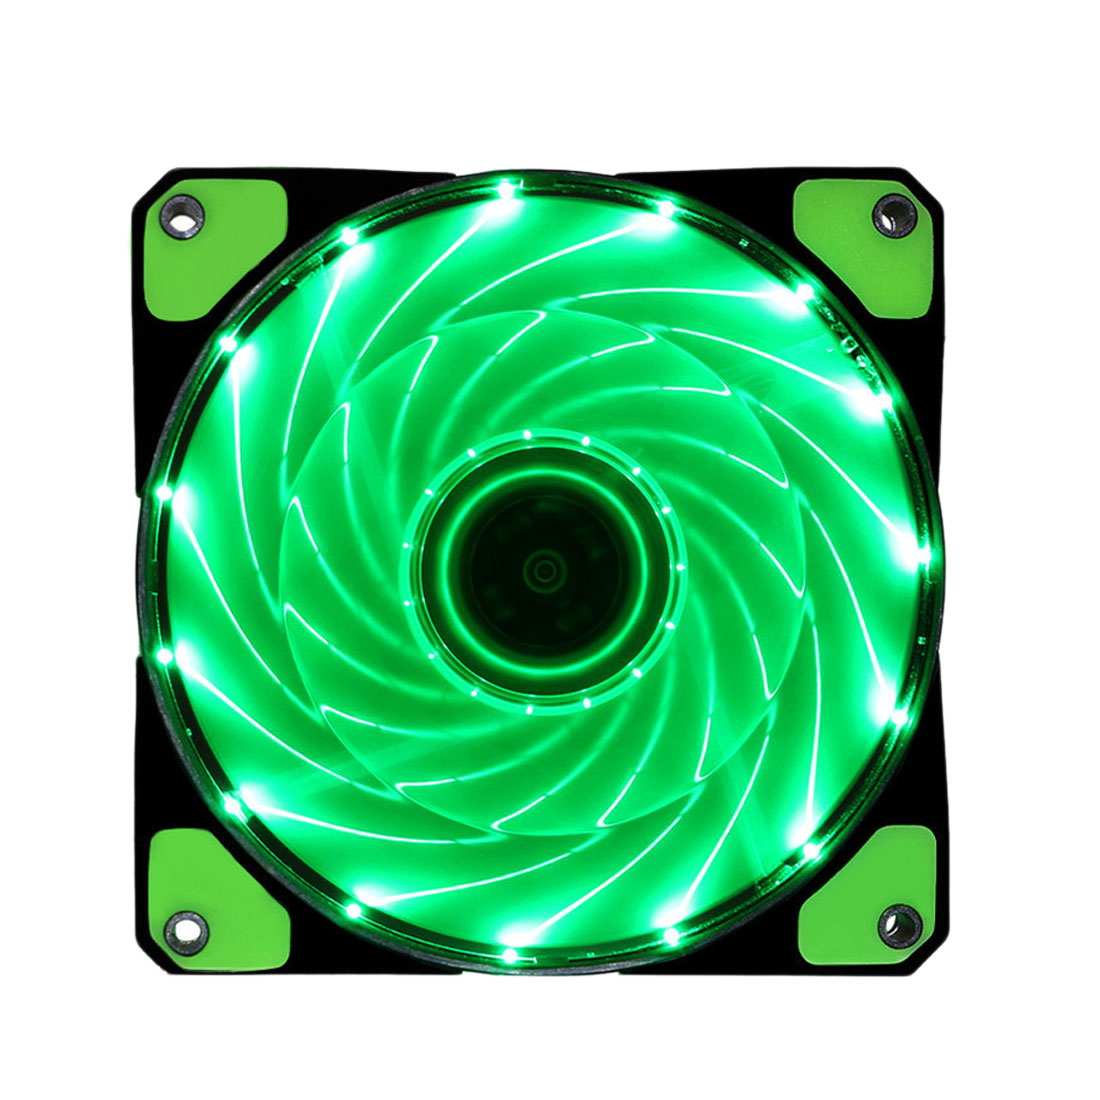 Etmakit 120mm LED Ultra Computer Cooler Silent Computer PC Case Fan 15 LEDs 12V With Rubber Quiet Connector Easy Installed Fan